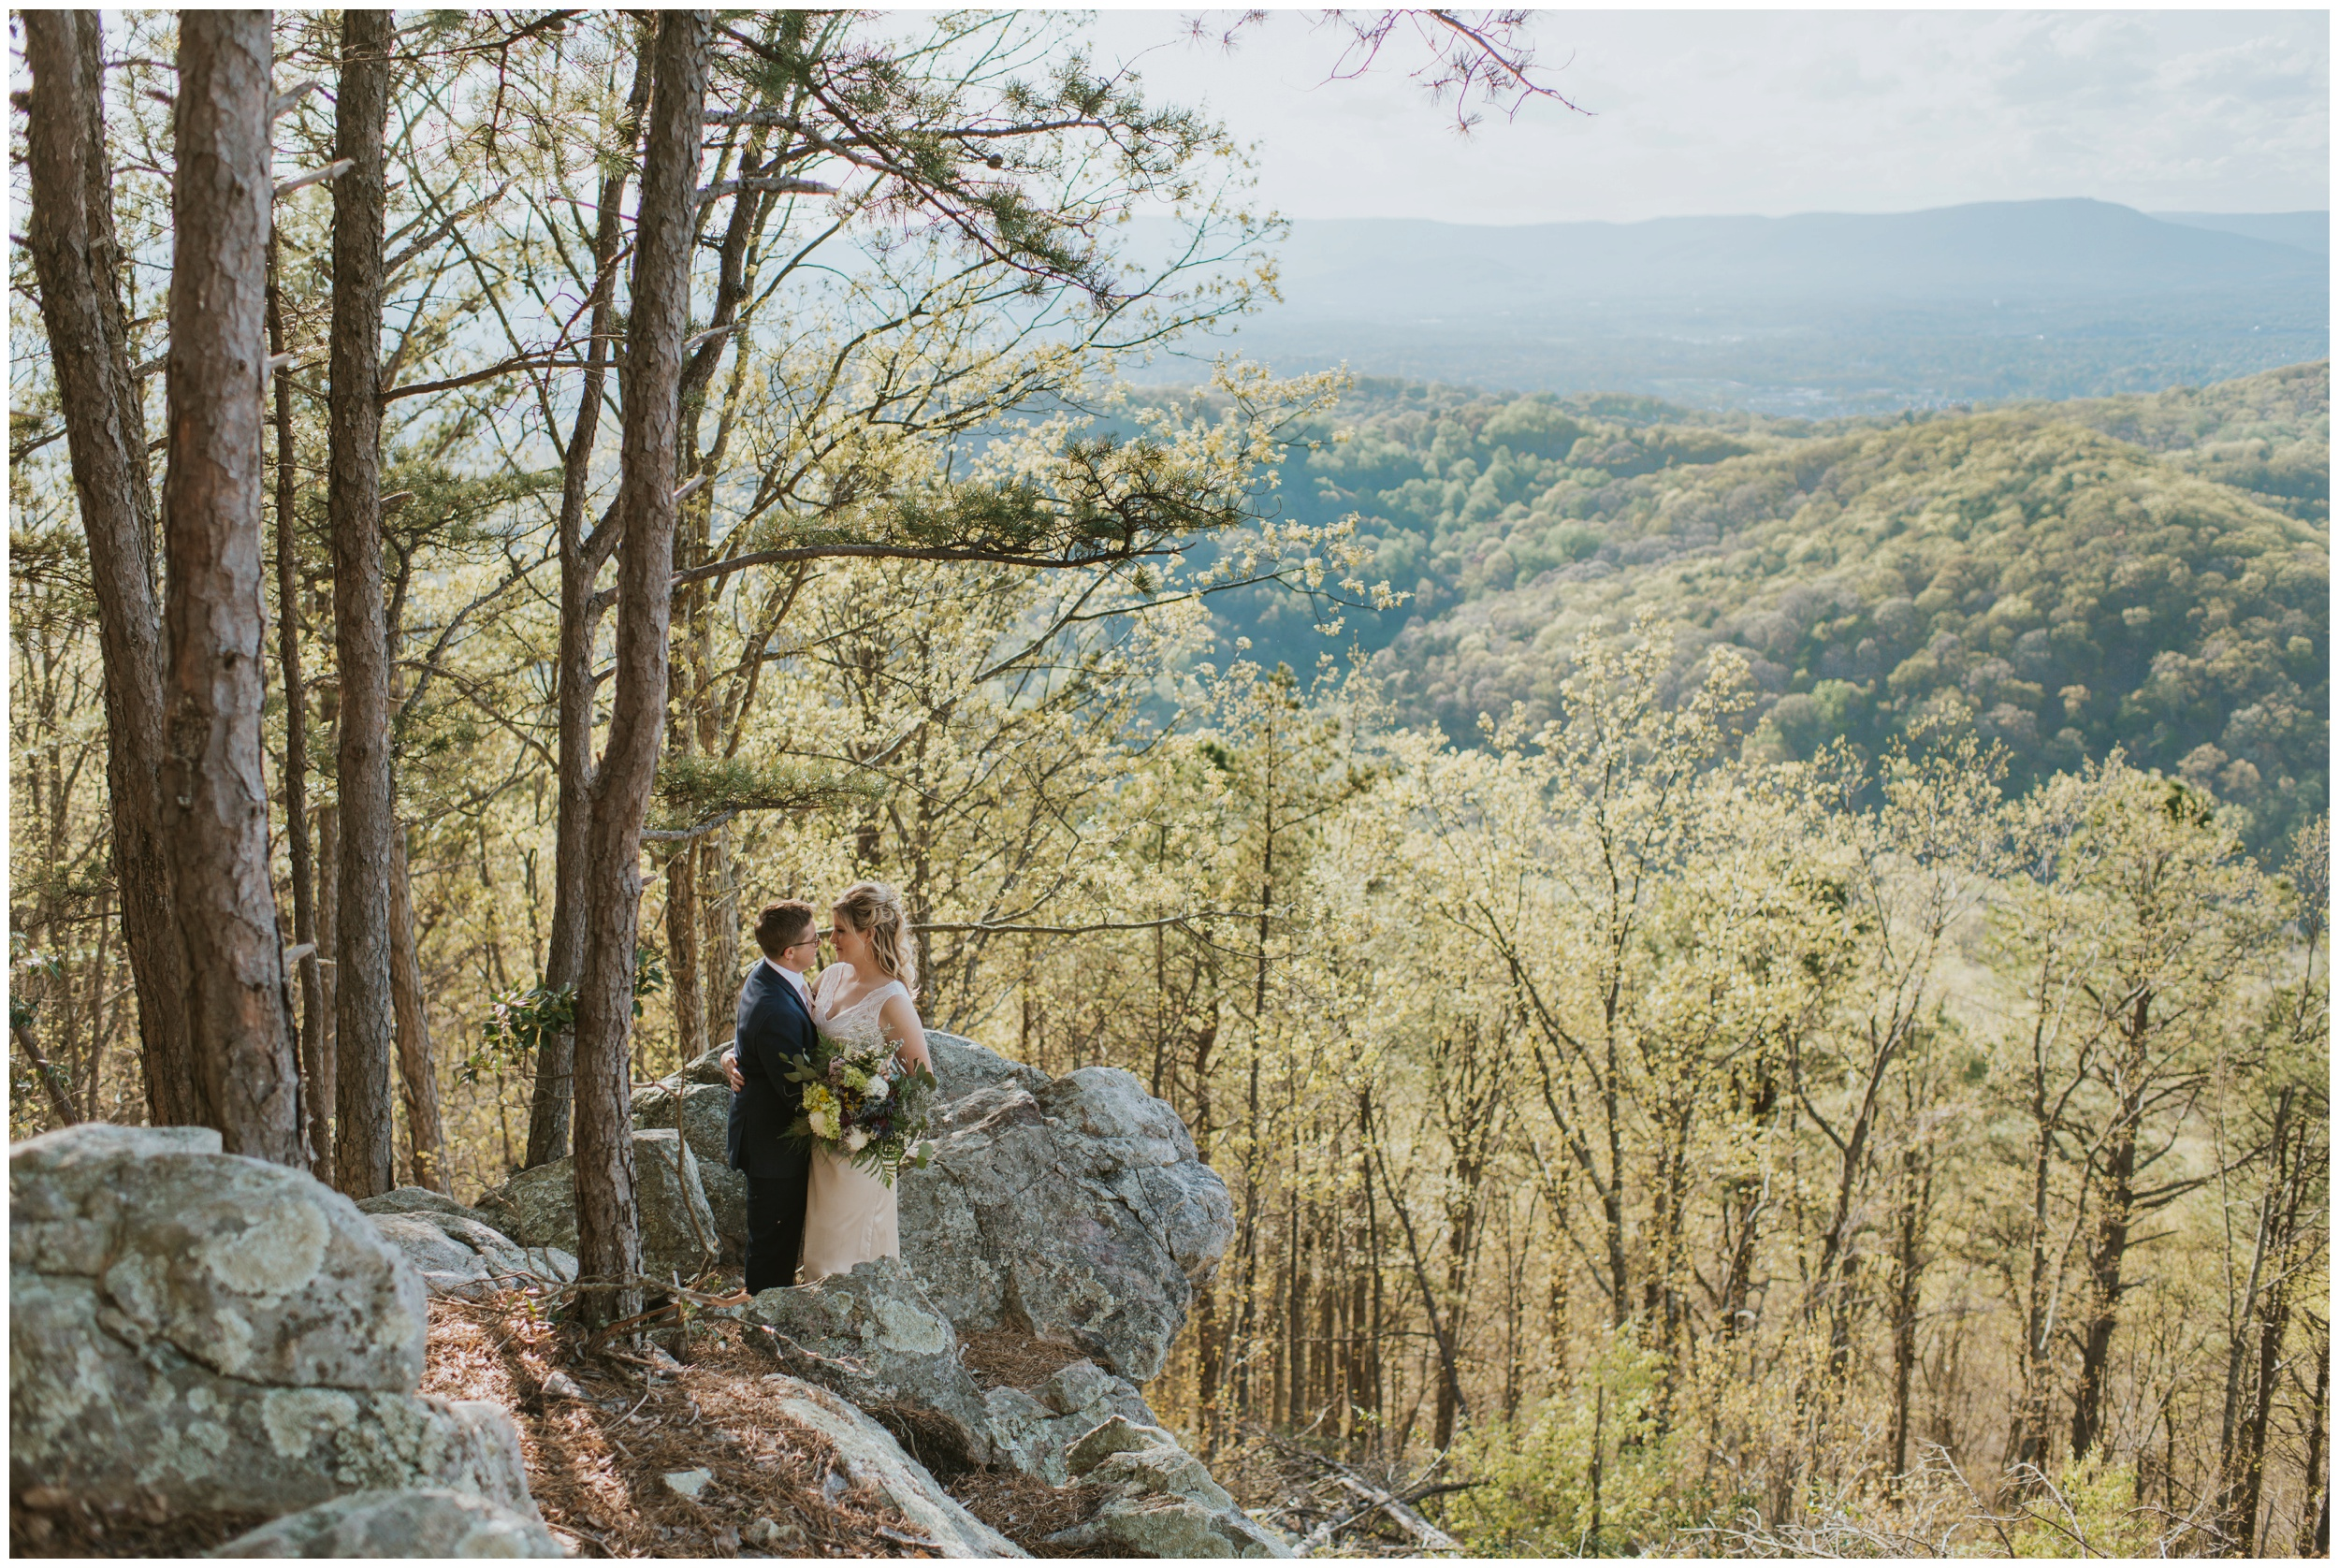 Roanoke Mountain Elopement | www.riversandroadsphotography.com